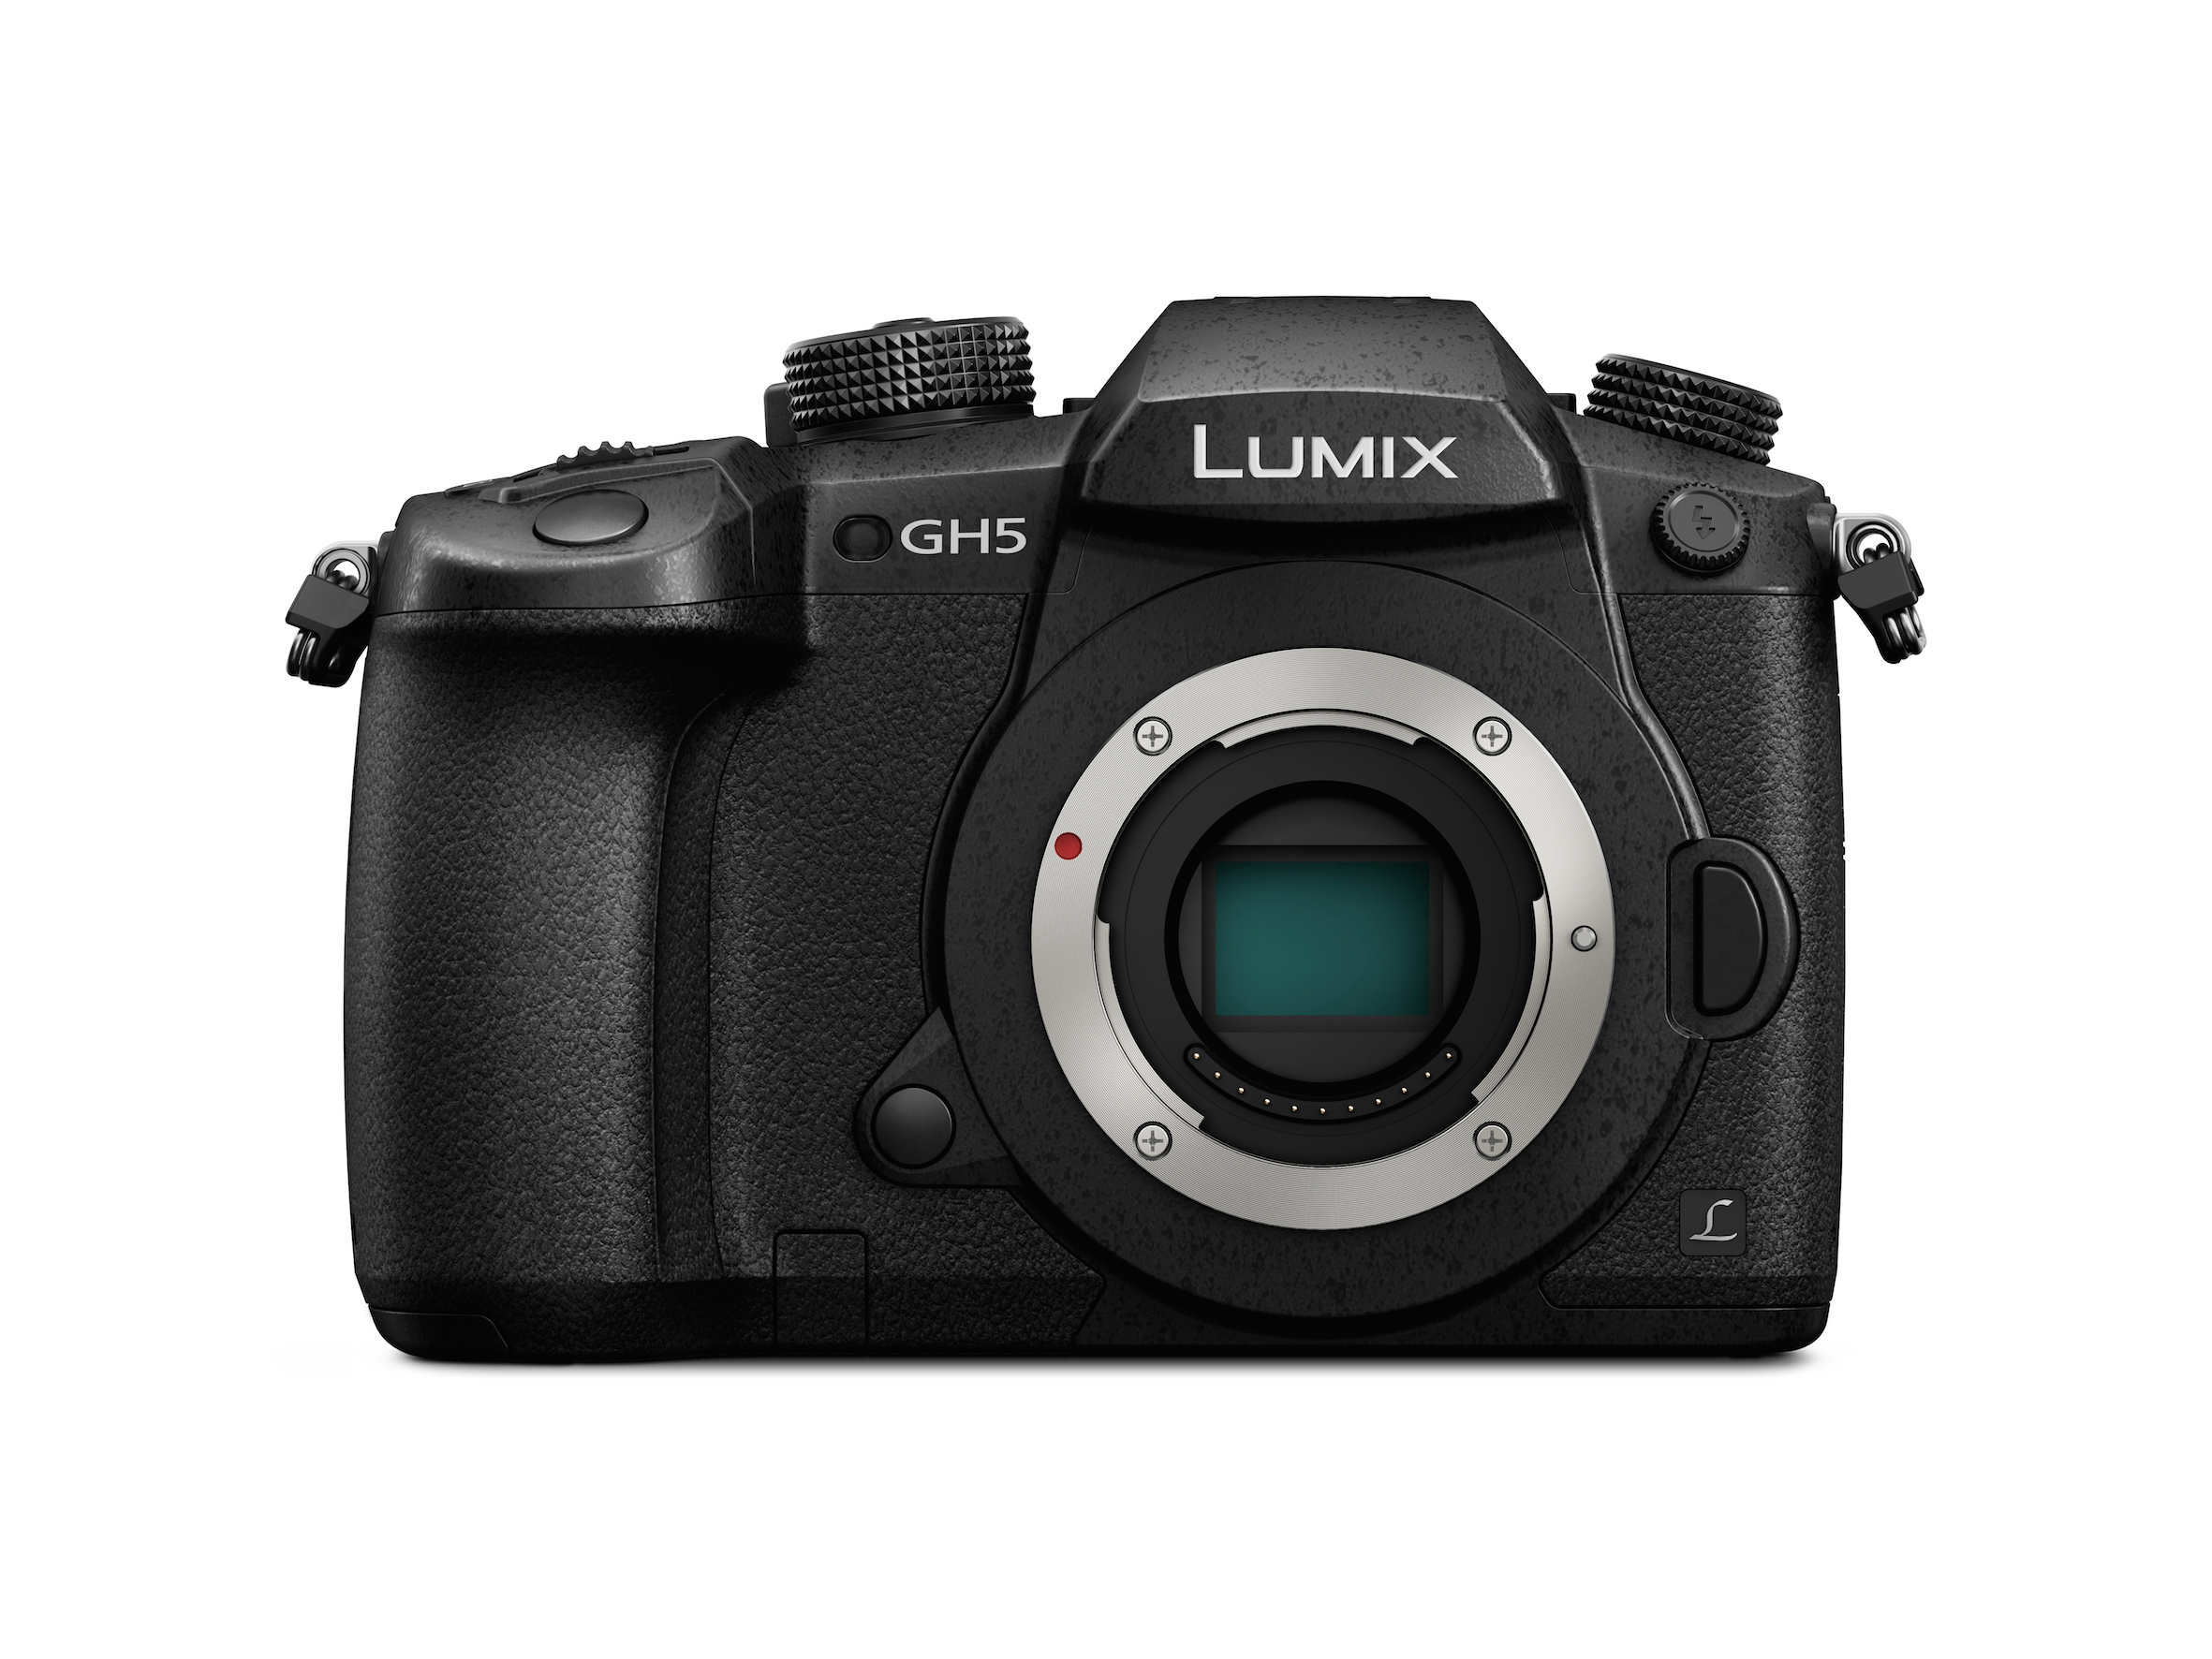 Panasonic GH5 Body / Foto (c) Panasonic